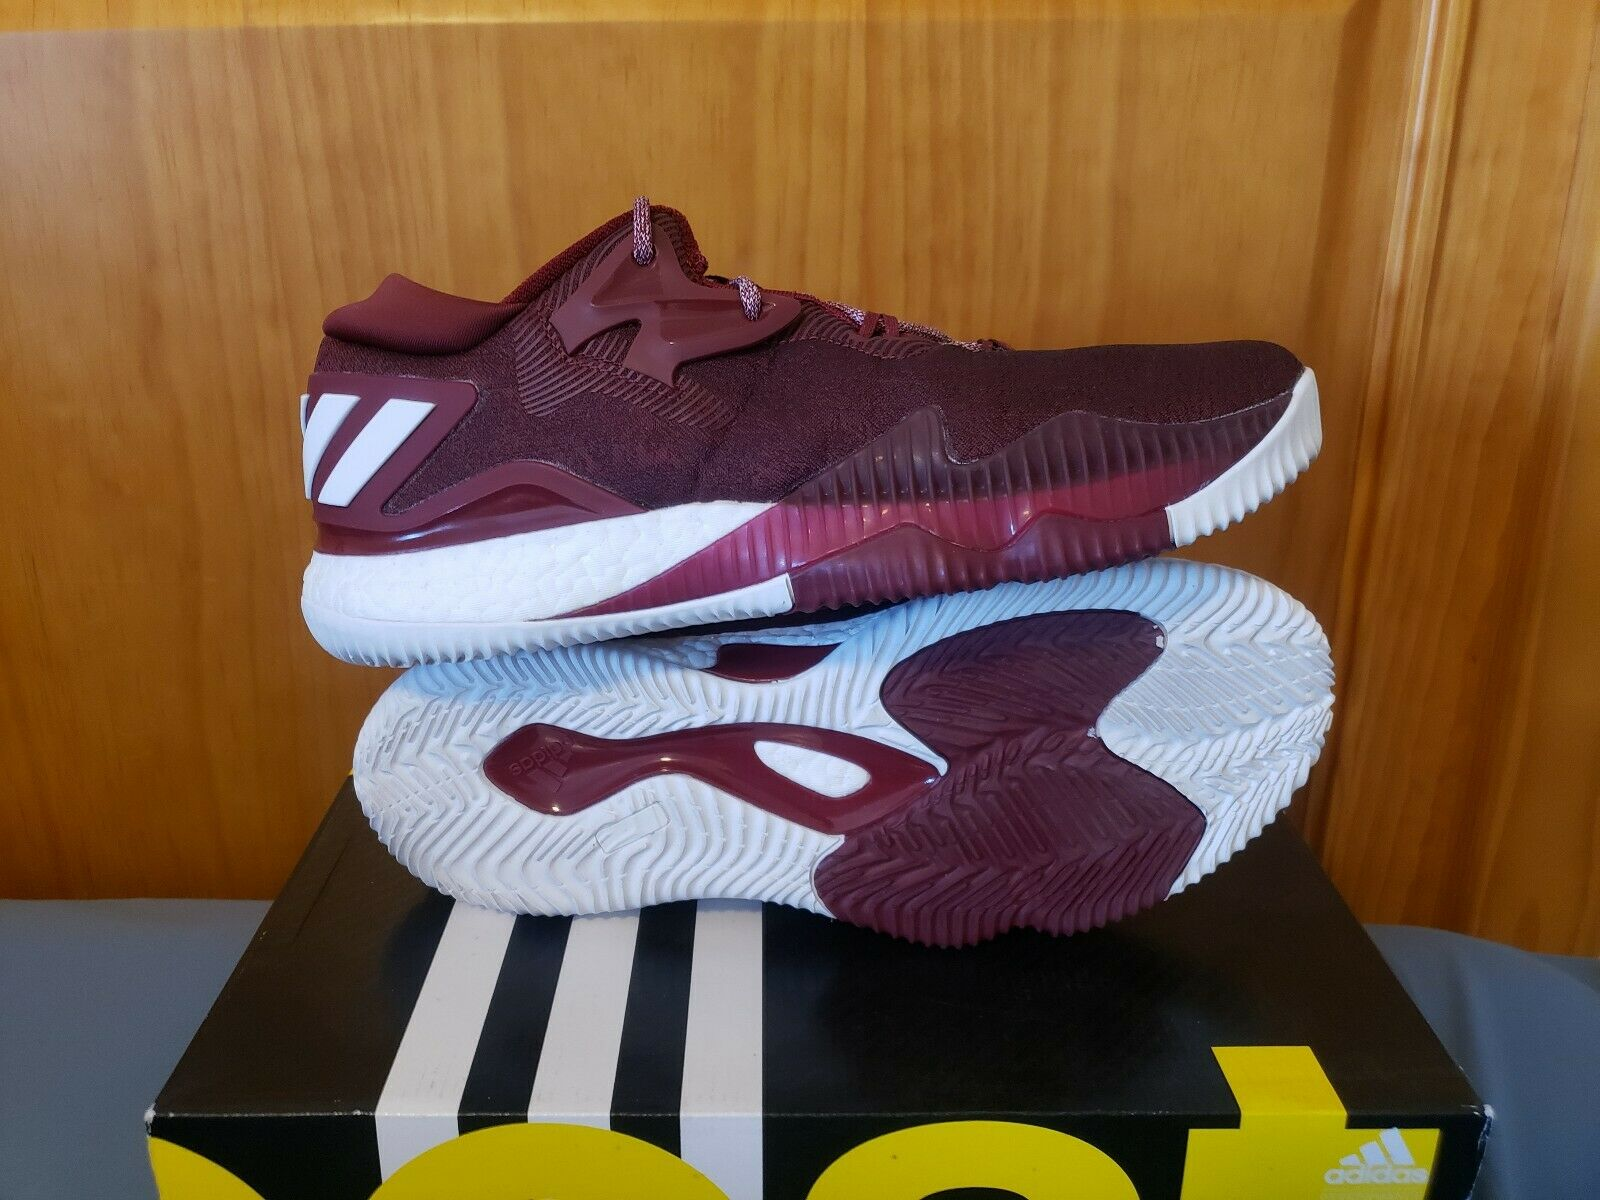 ADIDAS SM CL BOOST LOW sz 10.5